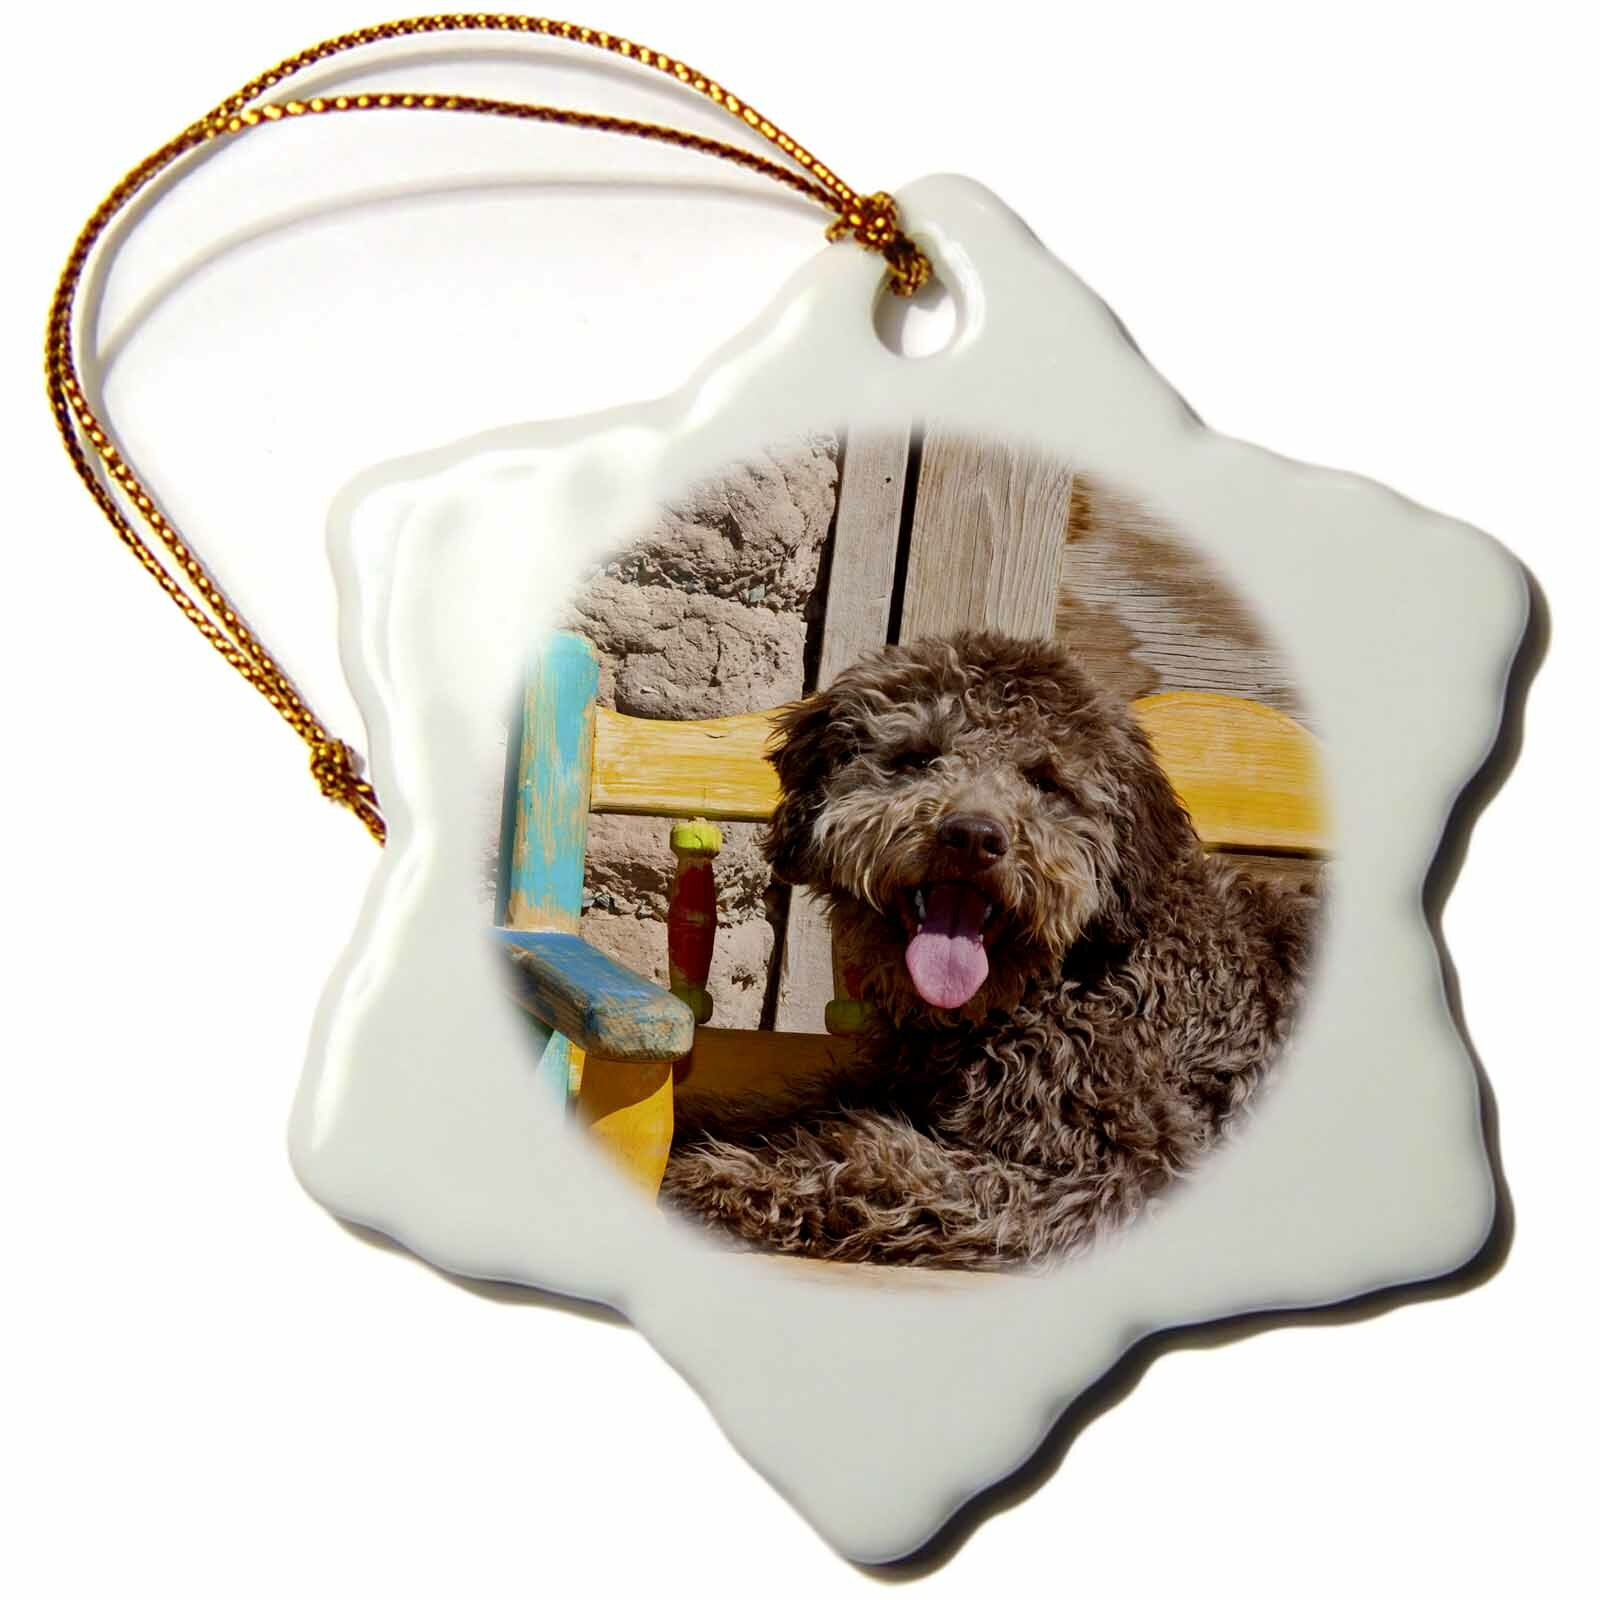 The Holiday Aisle Lagotto Romagnolo Lying On A Wooden Bench Snowflake Holiday Shaped Ornament Wayfair